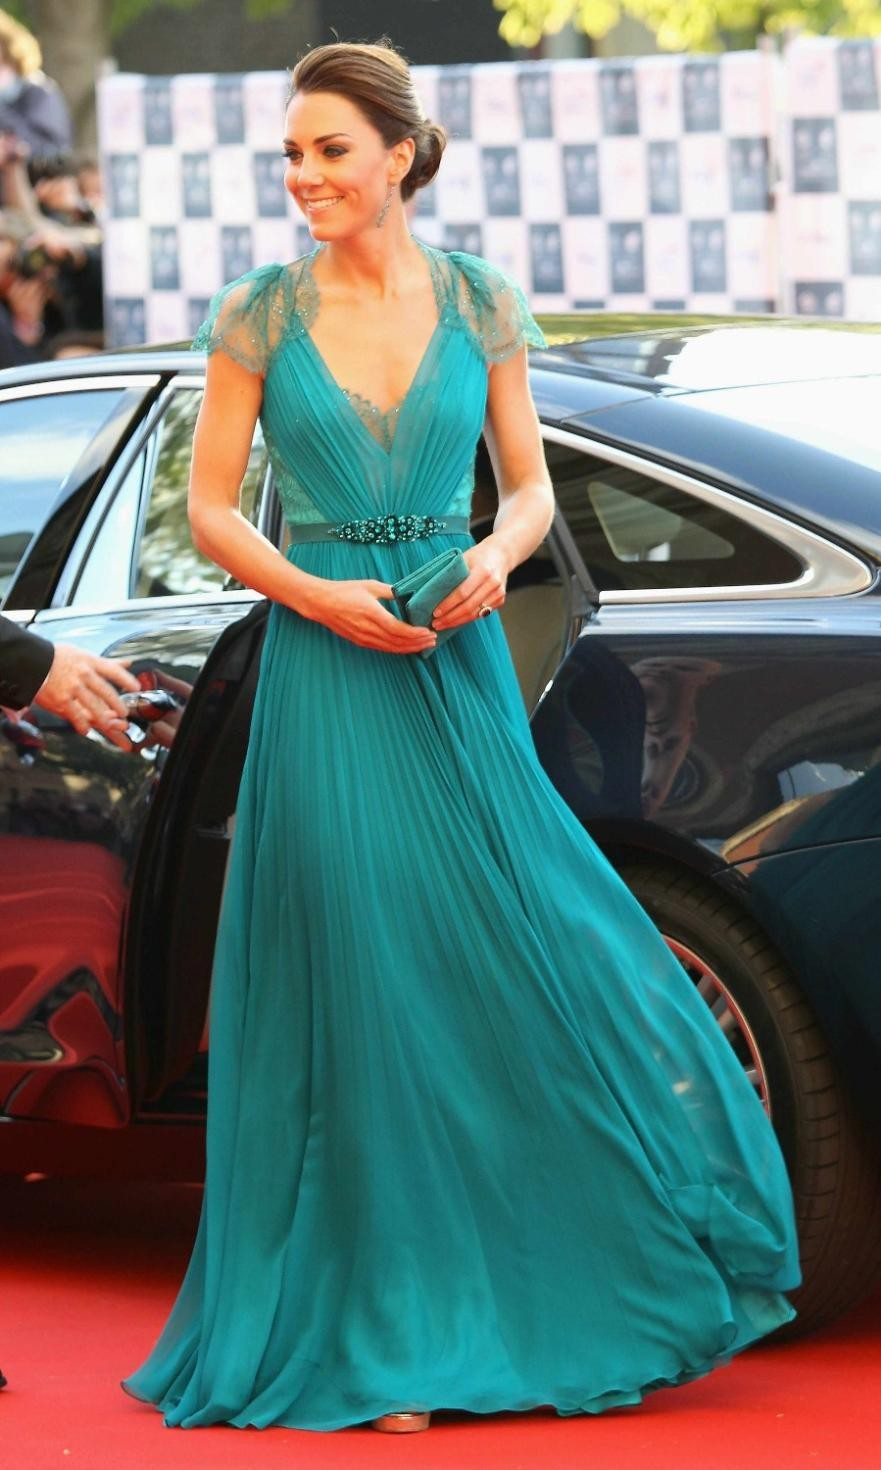 V Neck Abendkleider Cap Sleeves Robe De Soiree Green Lace Evening Prom Gown Vestido De Noiva 2018 Mother Of The Bride Dresses Wedding Party Dress